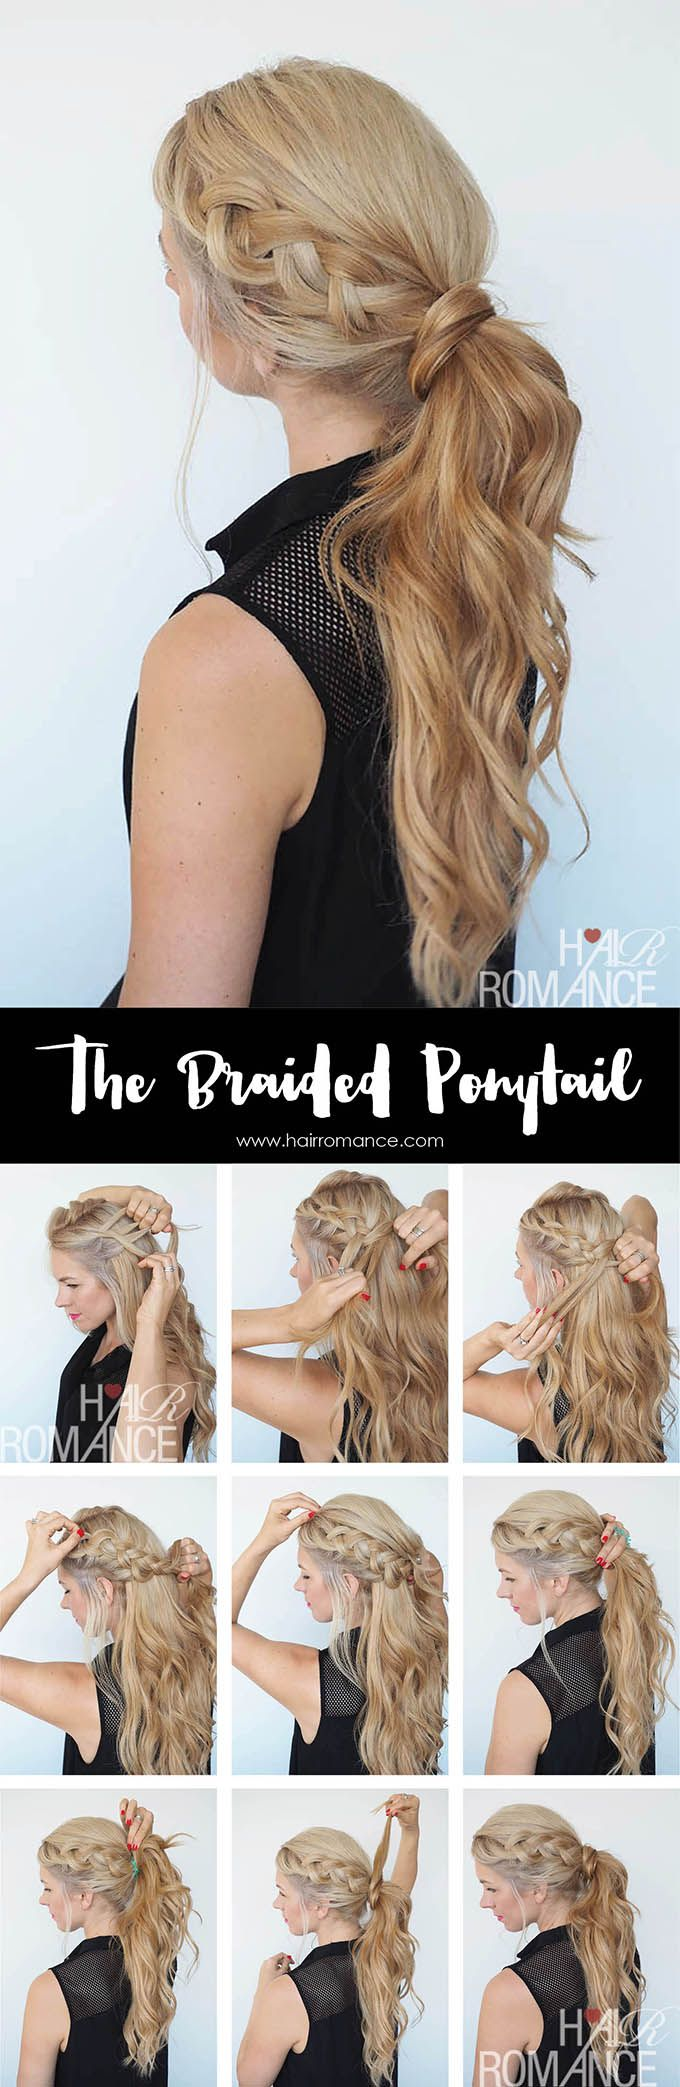 Hairstyle Tutorials Unique 389 Best Hair Romance Tutorials Images On Pinterest  Easy Hairstyle